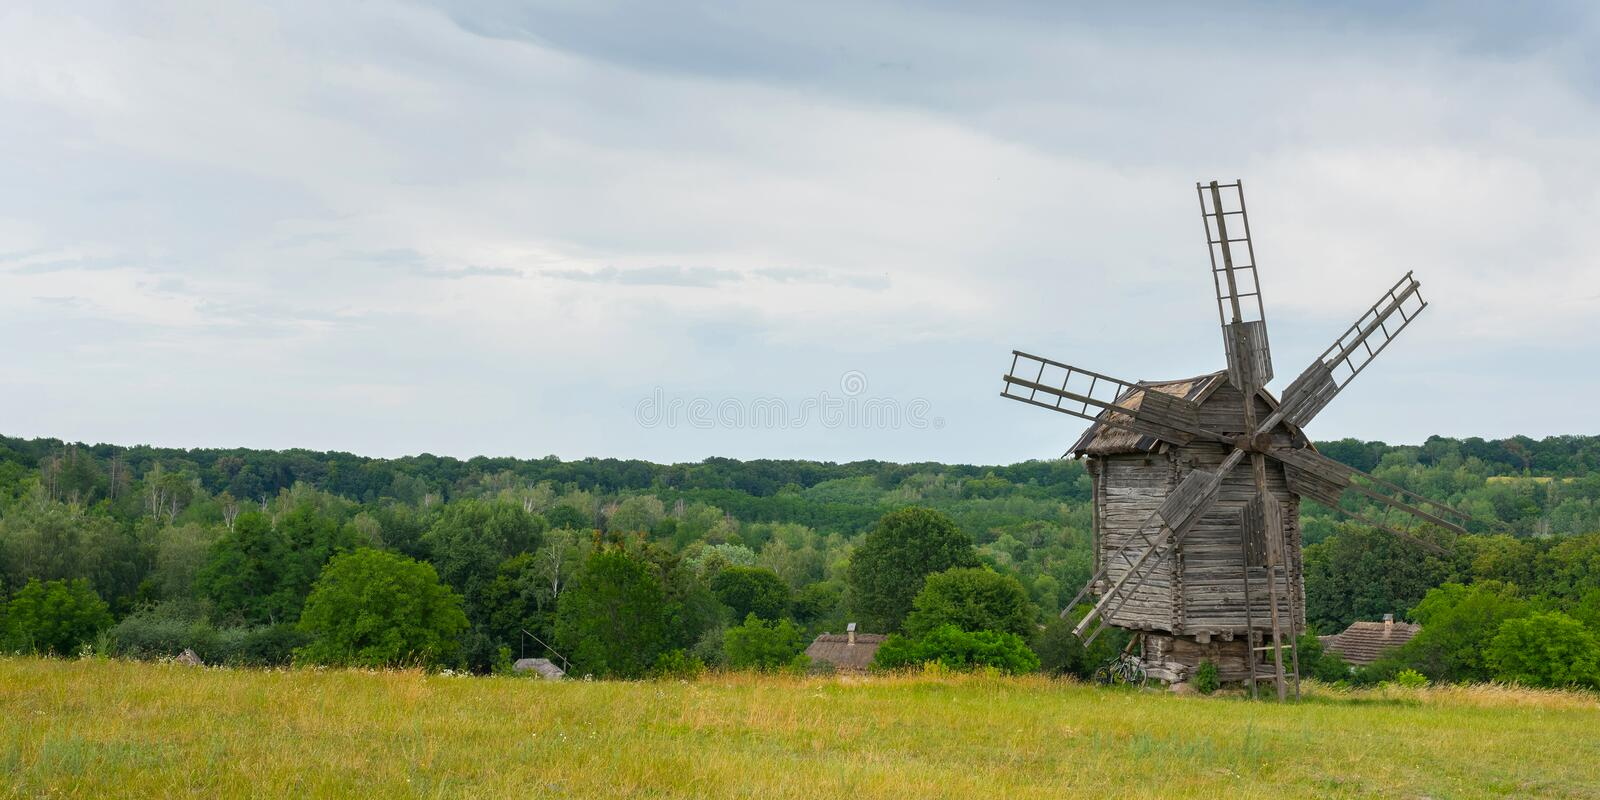 Old wooden windmill in the field. Agriculture. Fields and meadows royalty free stock image